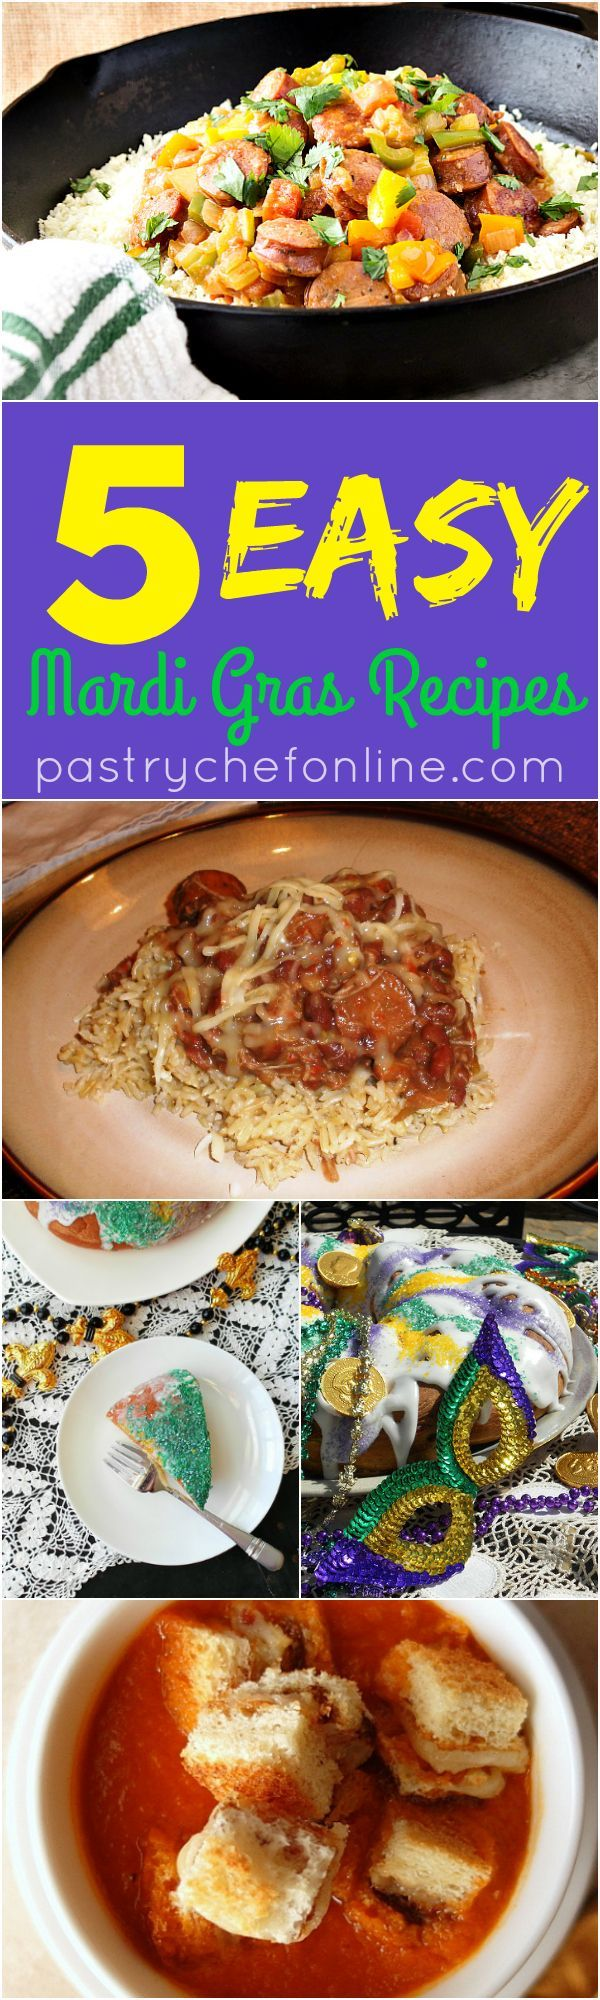 These easy Mardi Gras recipes will help you get the good times rolling this Fat Tuesday or any time you want some delicious Cajun flavors. Red beans and rice with chicken and andouille, Cajun spiced tomato soup with grilled cheese and bacon croutons, low-carb creamy Cajun sausage with cauliflower rice and two recipes for King Cake! Enjoy! | pastrychefonline.com